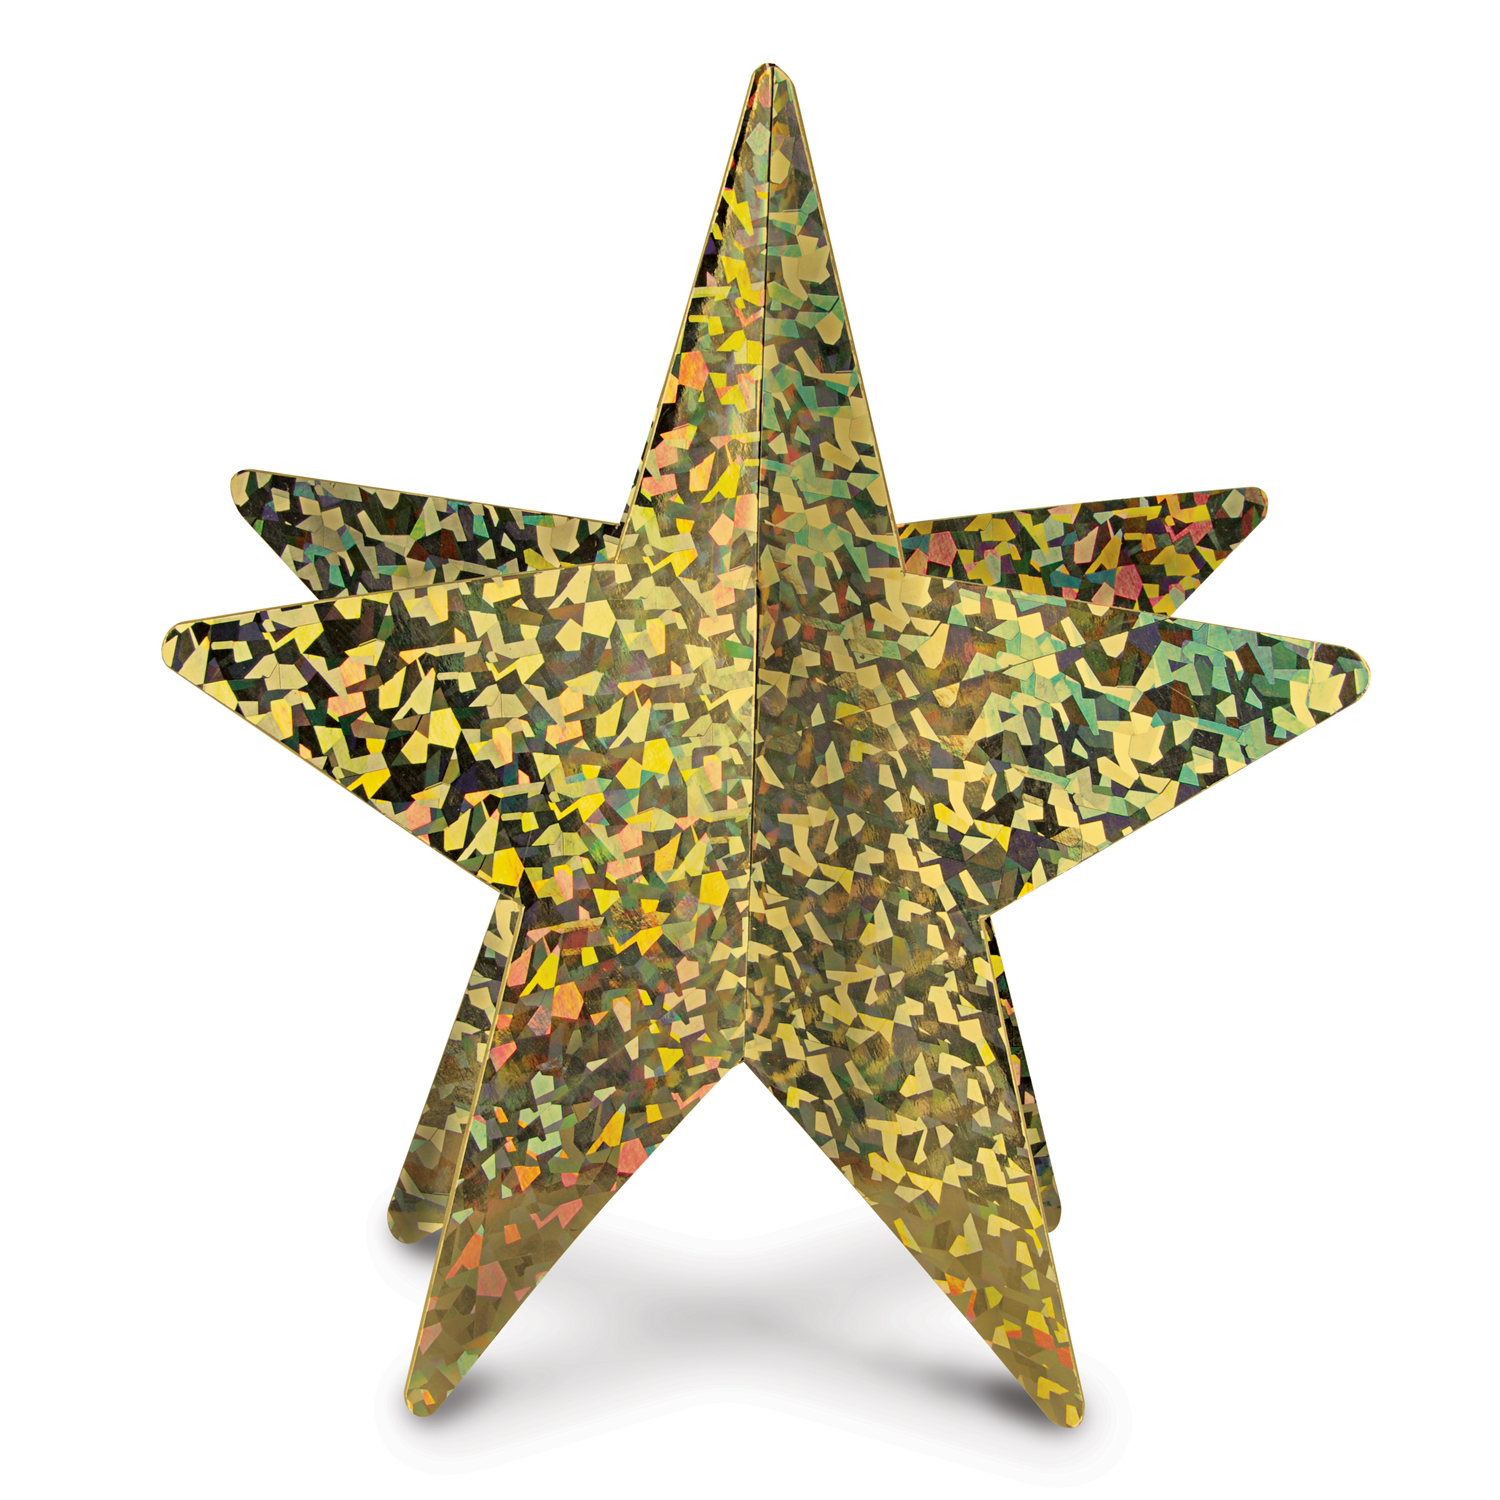 3-D Prismatic Star Centerpiece 12in gold